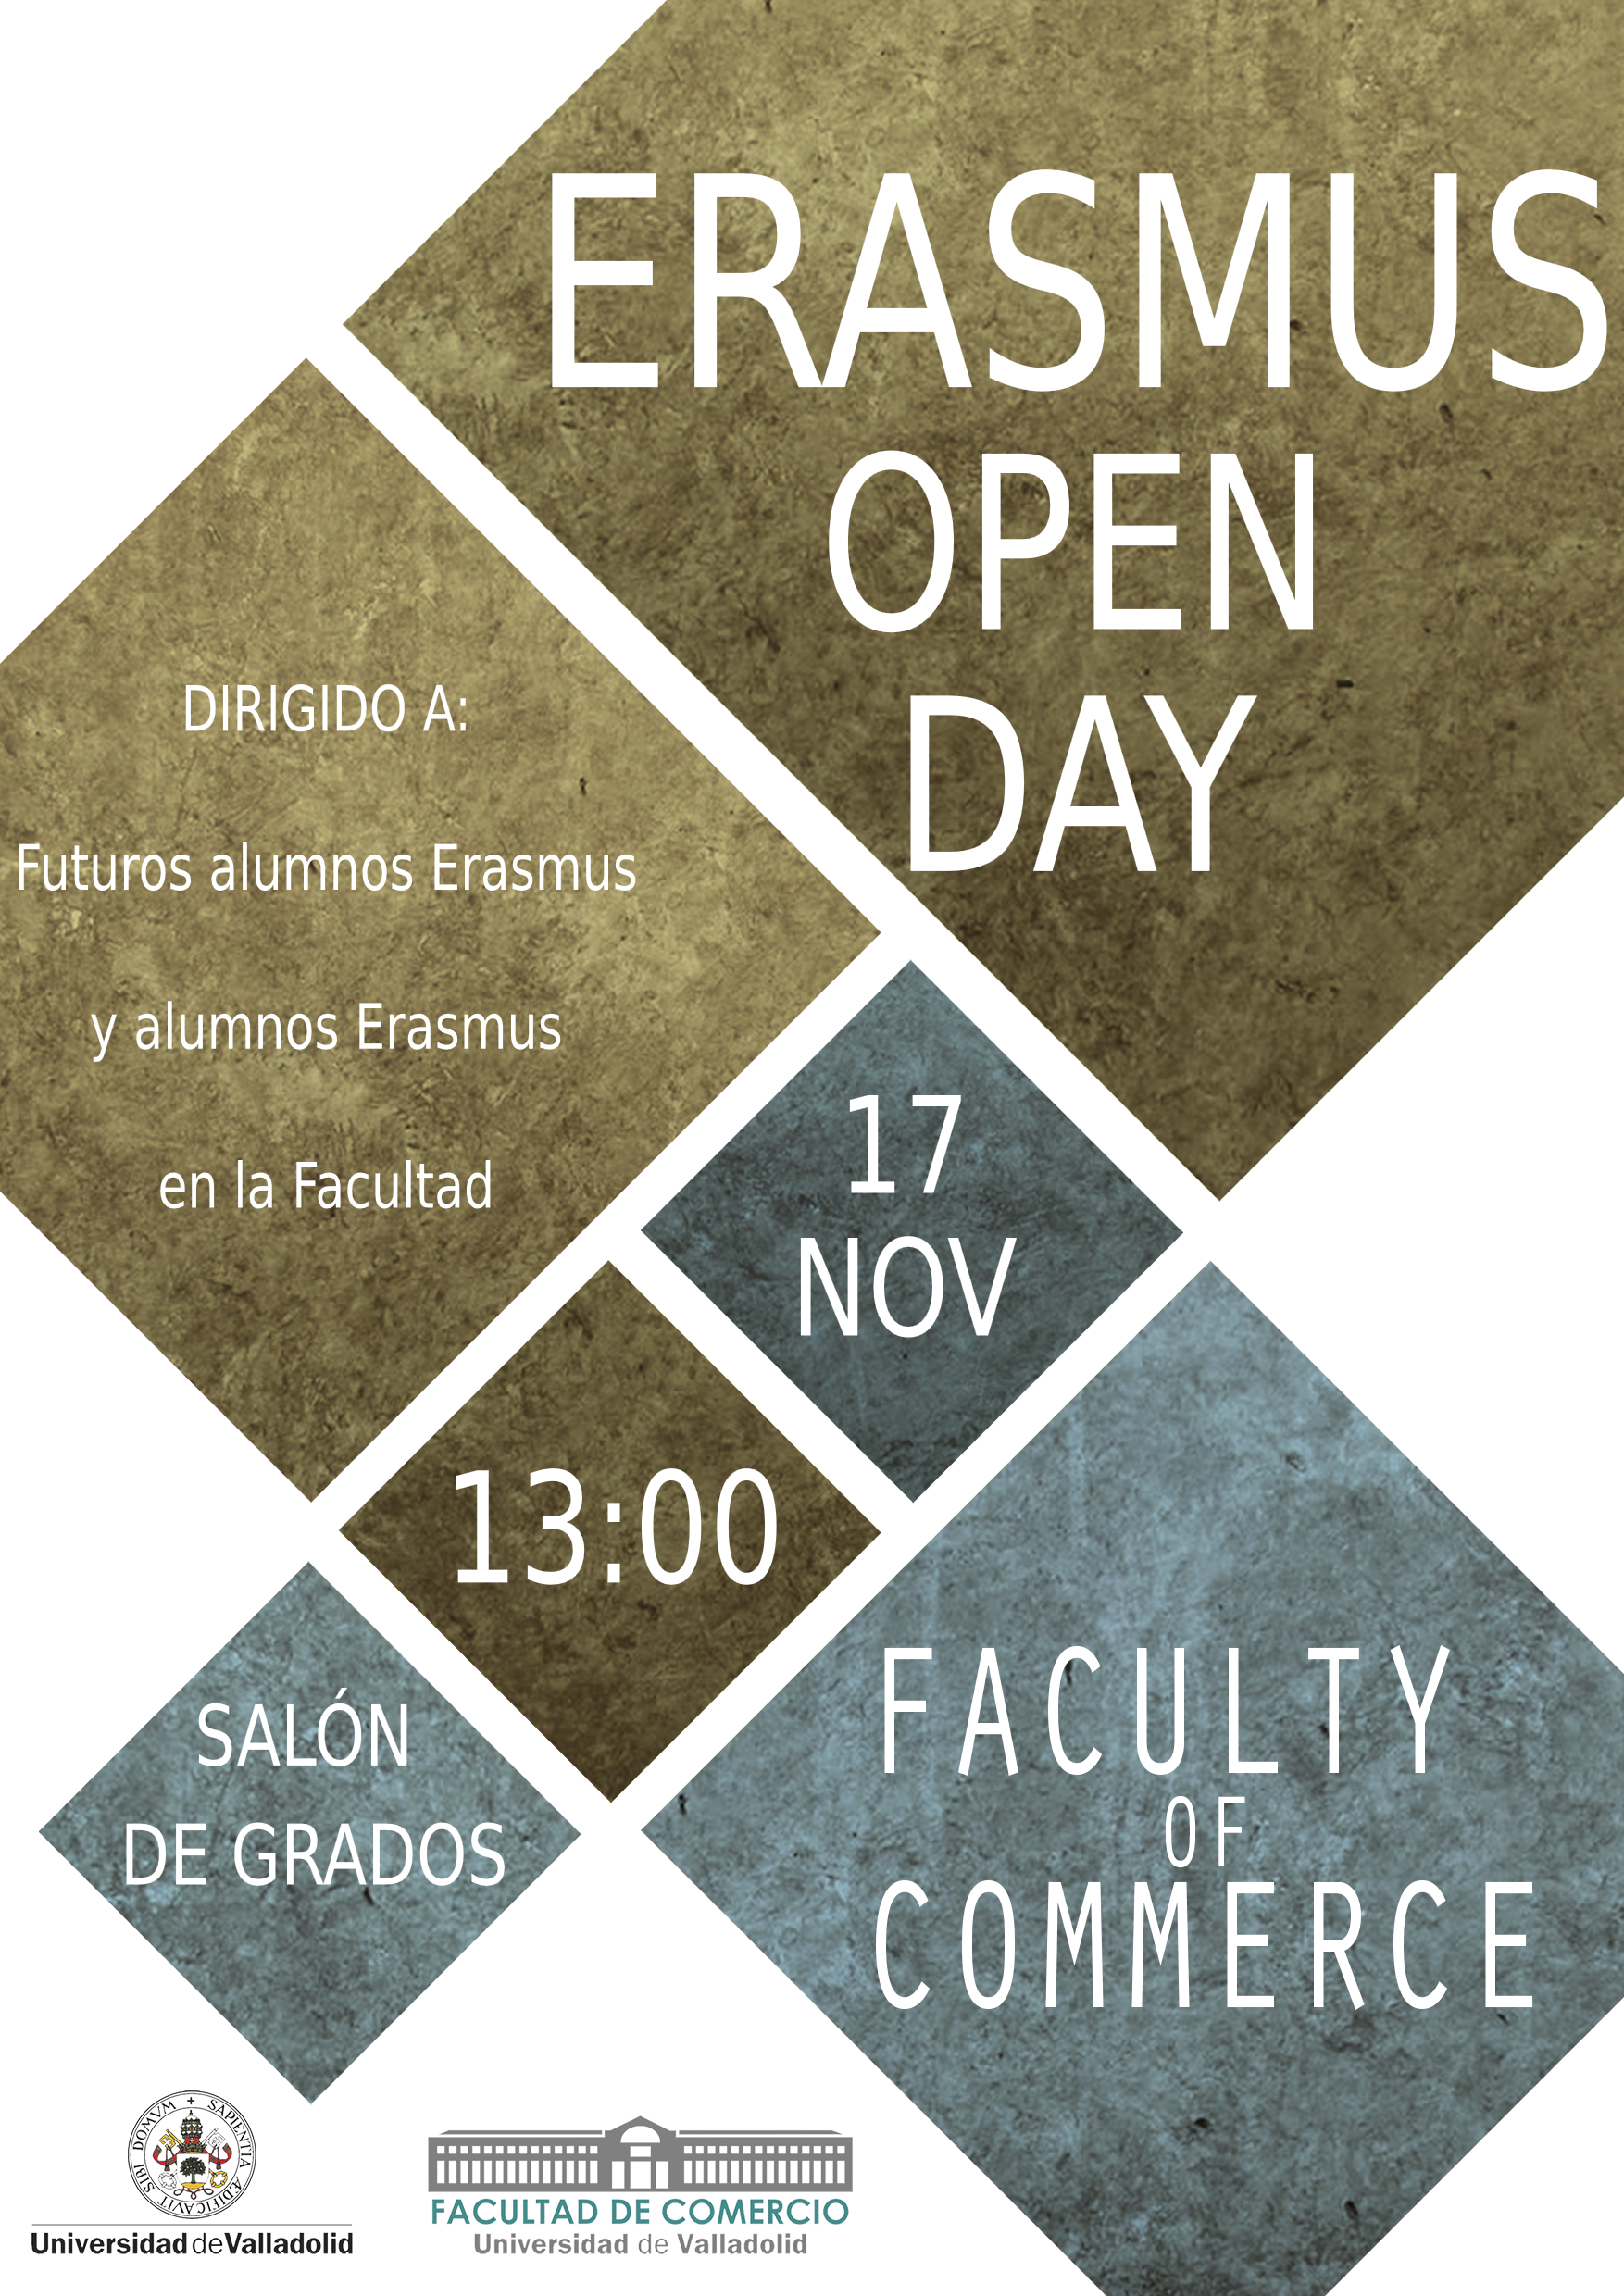 Erasmus Open Day